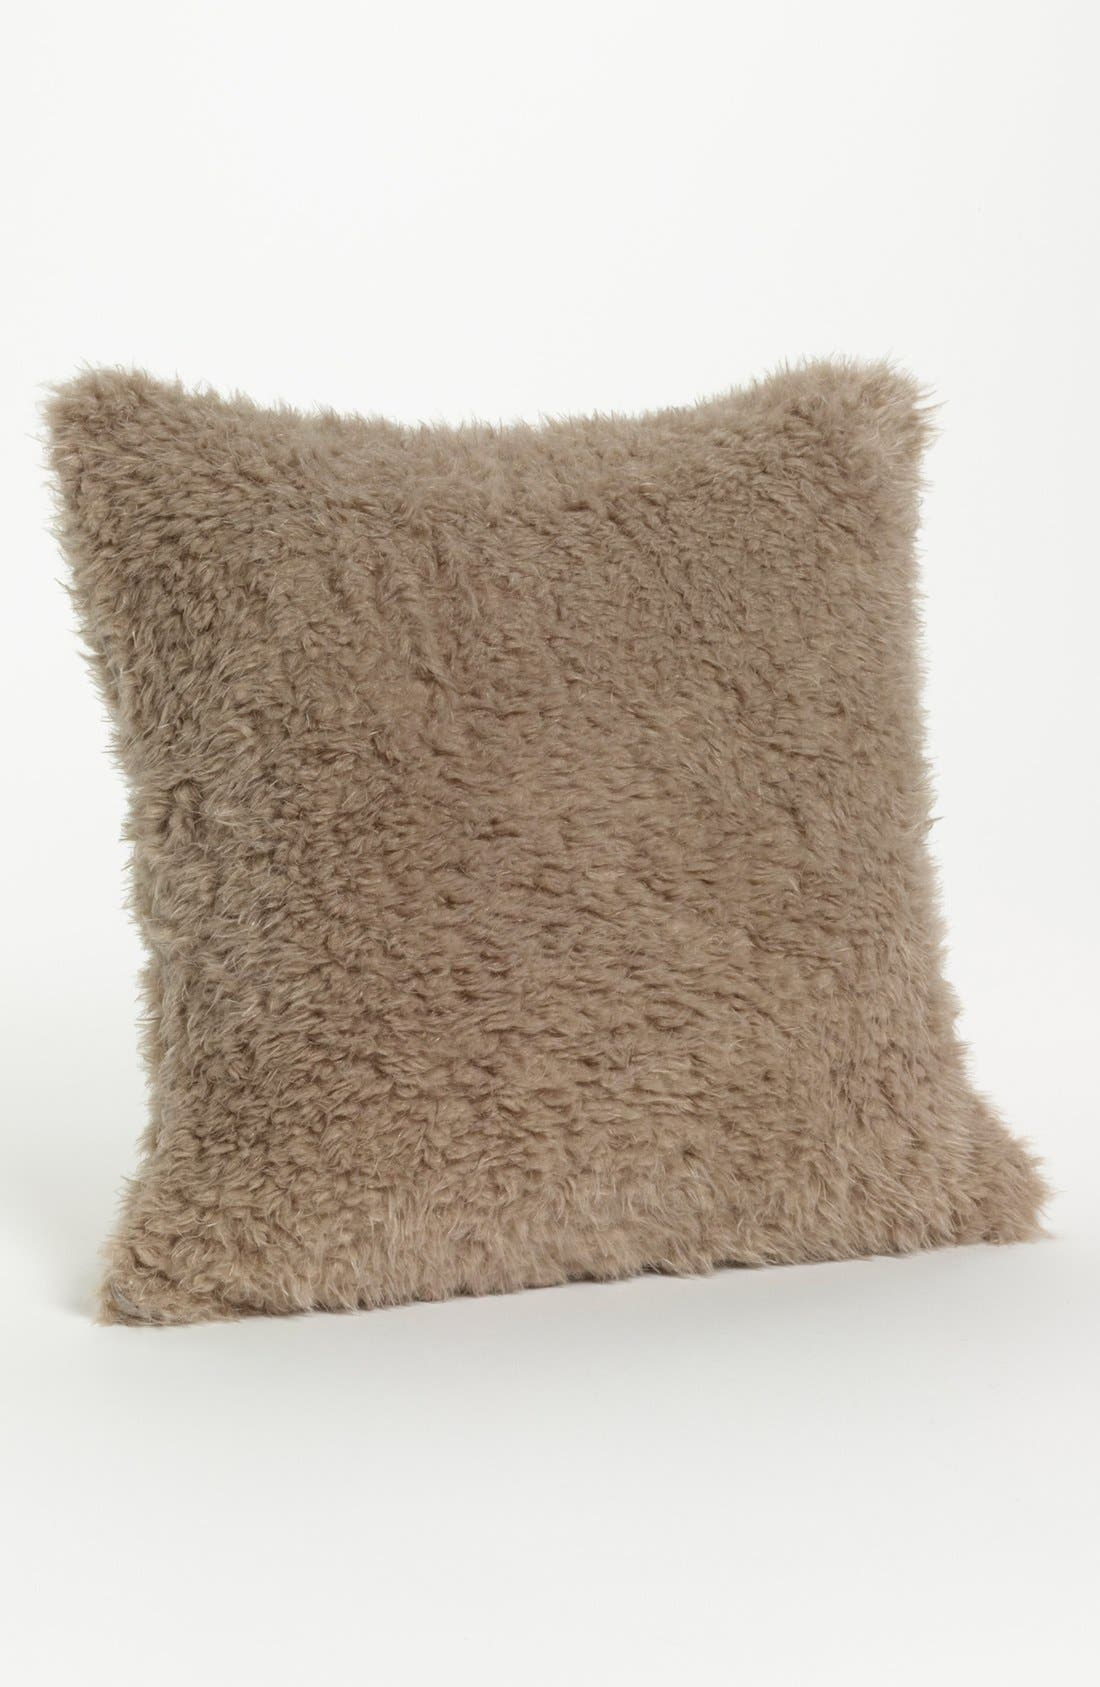 'Bella' Throw Pillow,                             Main thumbnail 1, color,                             FLAX